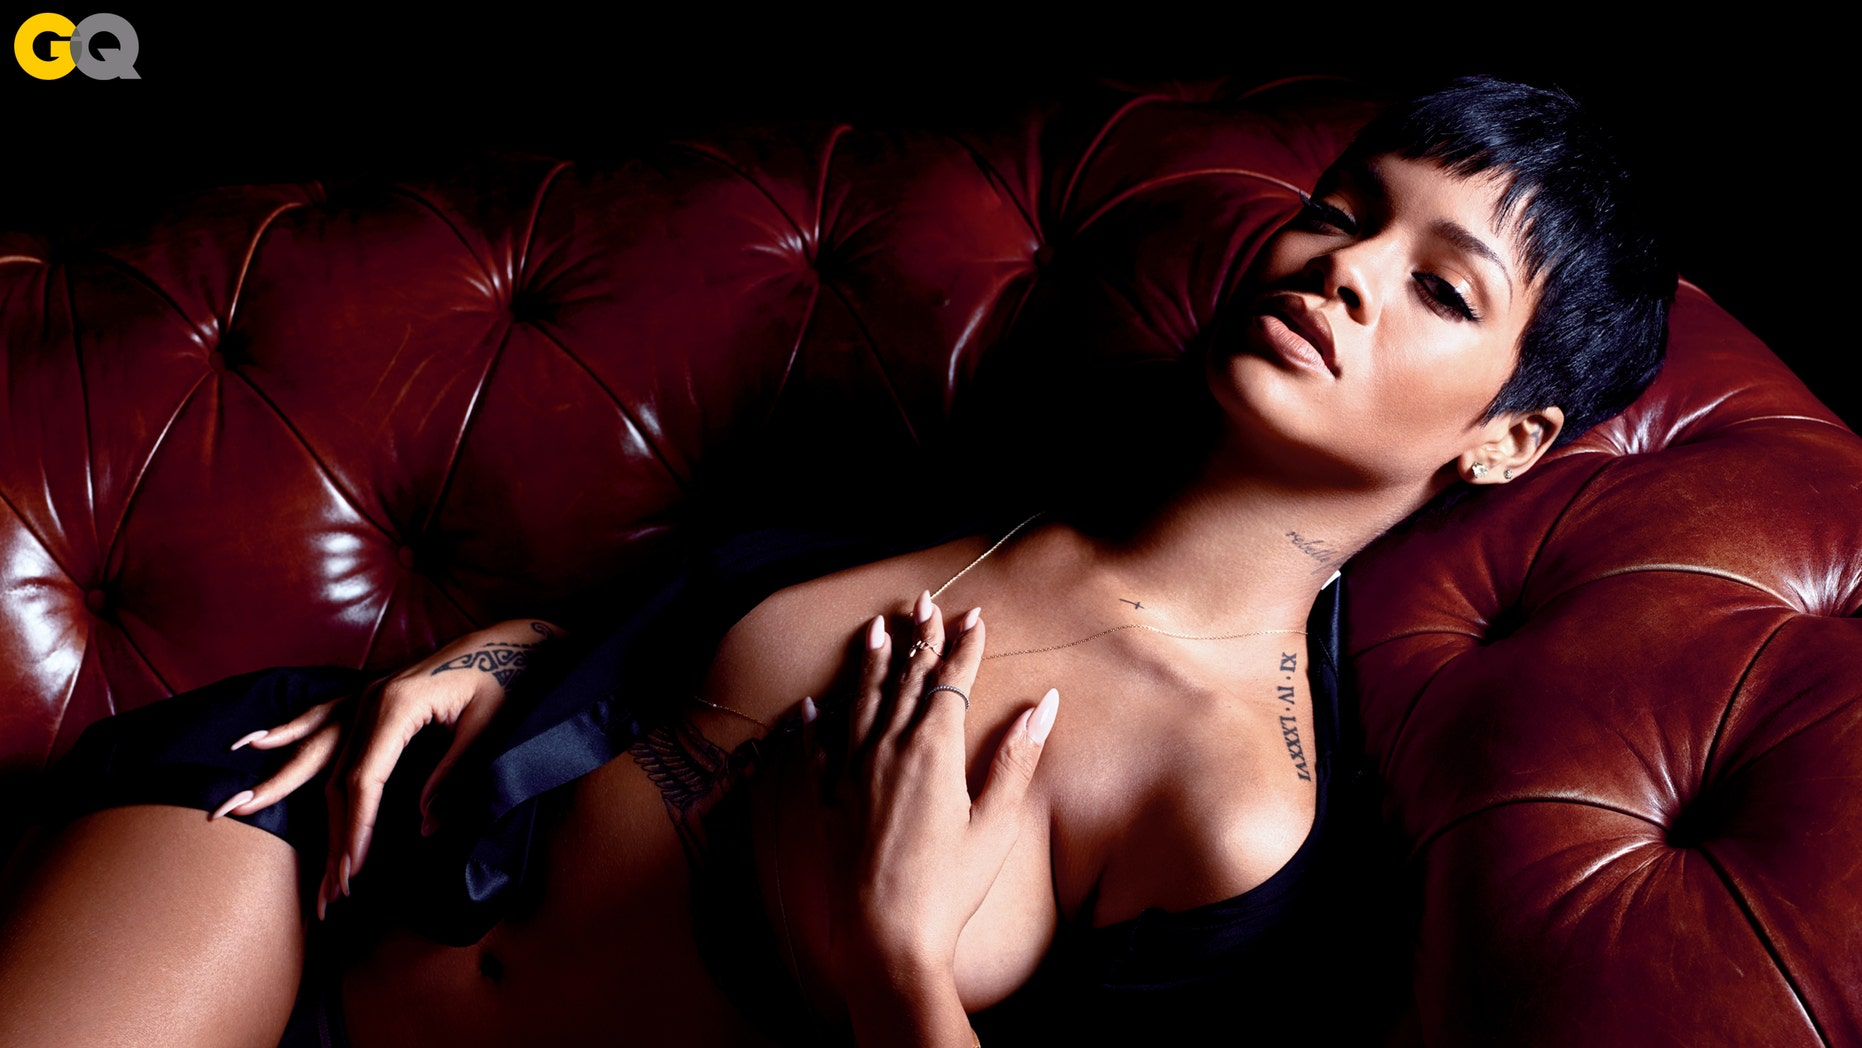 Rihanna poses for GQ's December cover.